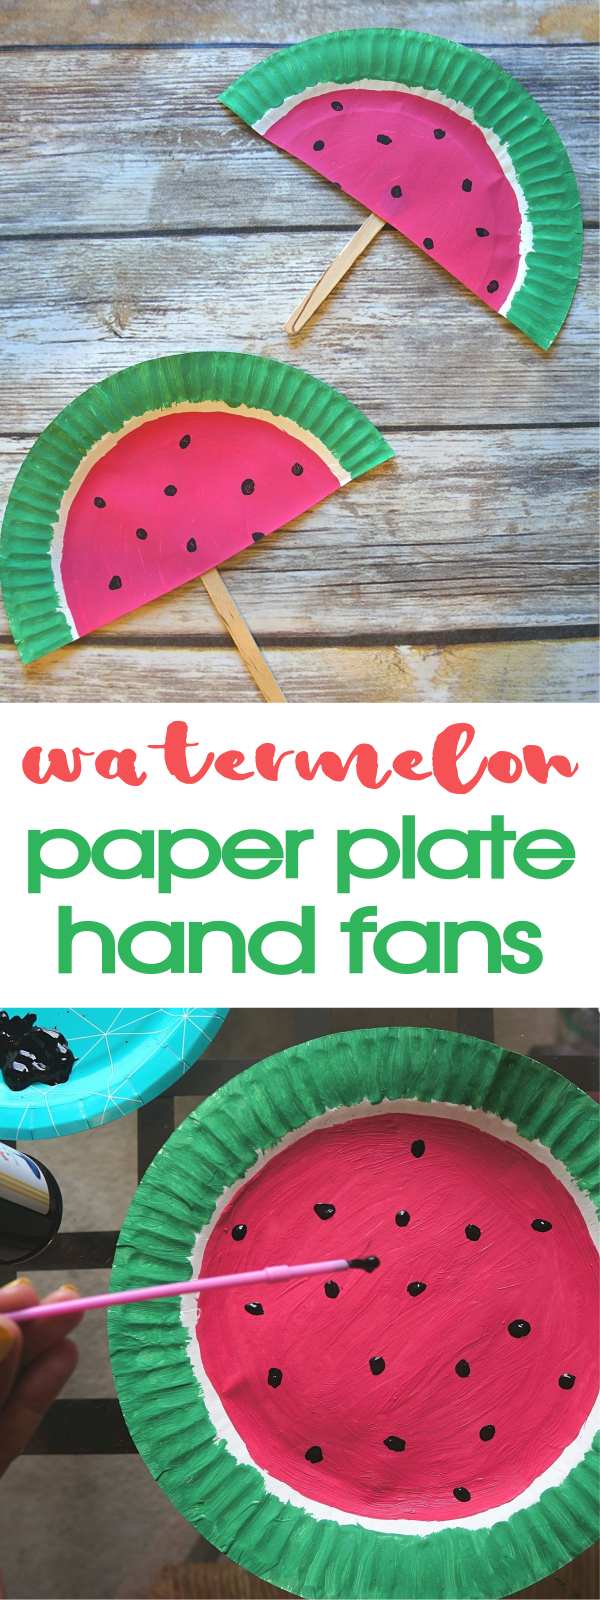 DIY Paper Plate Watermelon Fans Craft - Such A Cute Summer Activity! DIY hand fans | watermelon paper plate craft | watermelon hand fans | diy watermelon fans | watermelon paper fans | watermelon paper craft | honeyandlime.co